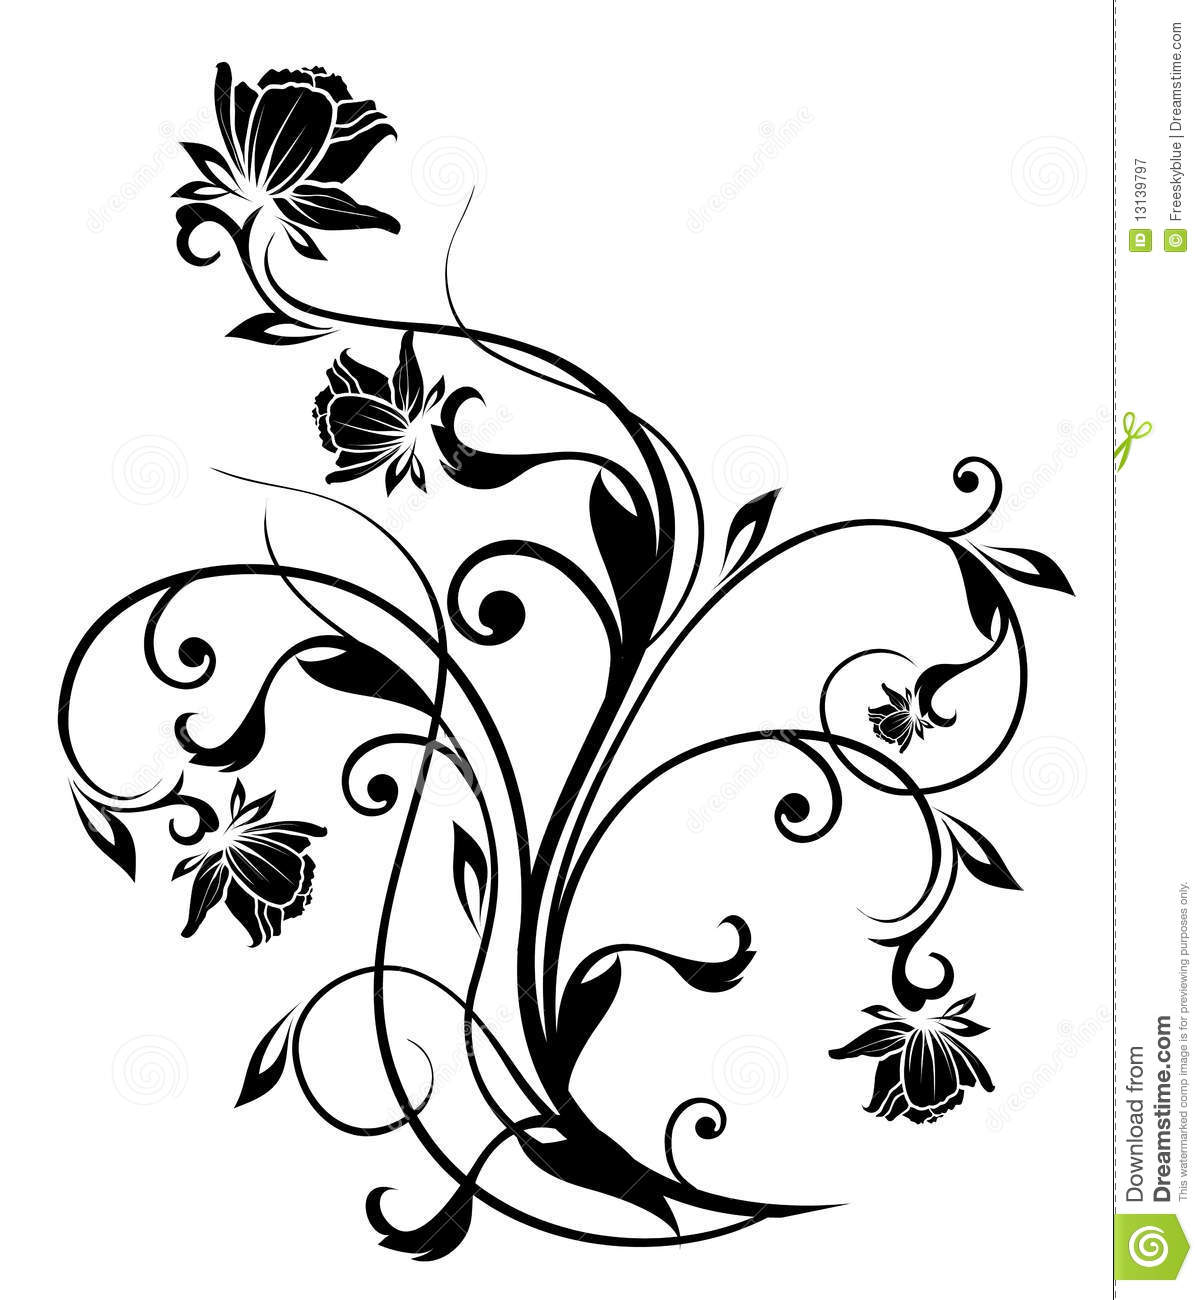 Abstract Wall Stickers Black Flower Silhouette Royalty Free Stock Photography